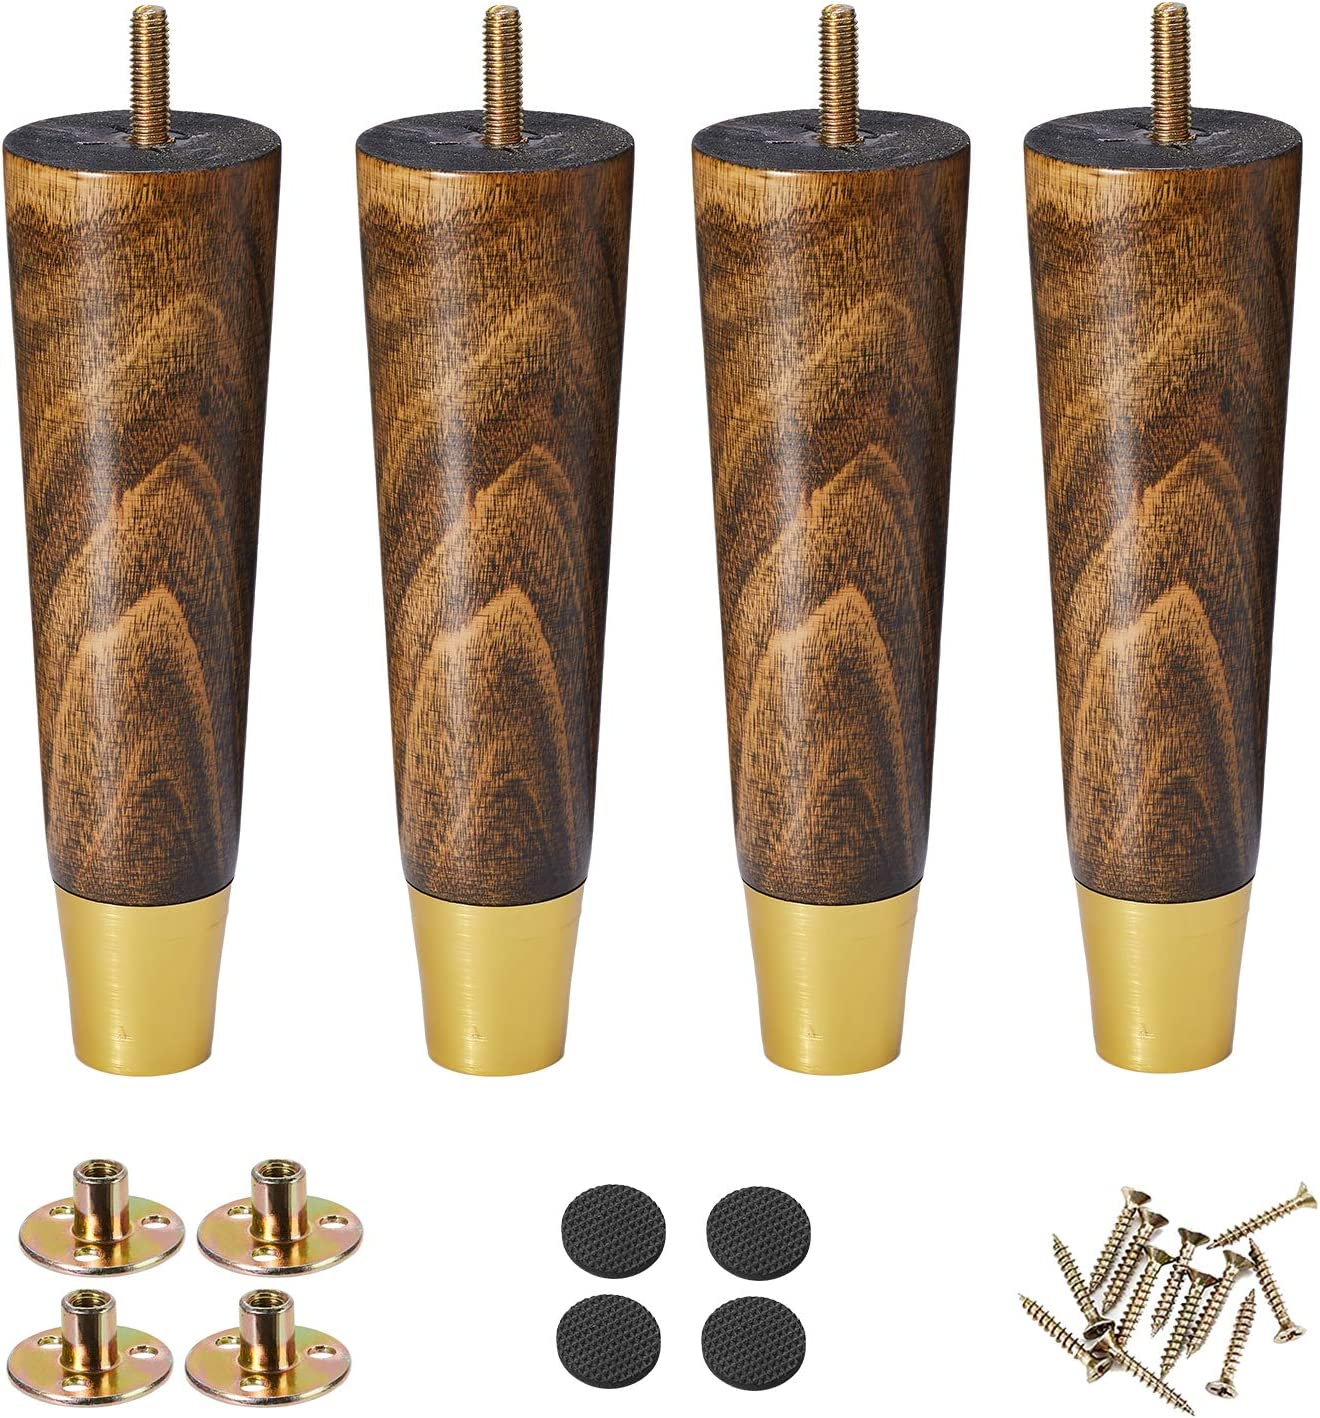 Wood Furniture Legs 6 inch Couch Legs,Pack of 4 Round Couch Legs, Mid Century Desk Legs Espresso, Replacement Legs for Couch for Dresser Legs Sideboard Recliner Couch Circle Chair Couch Riser